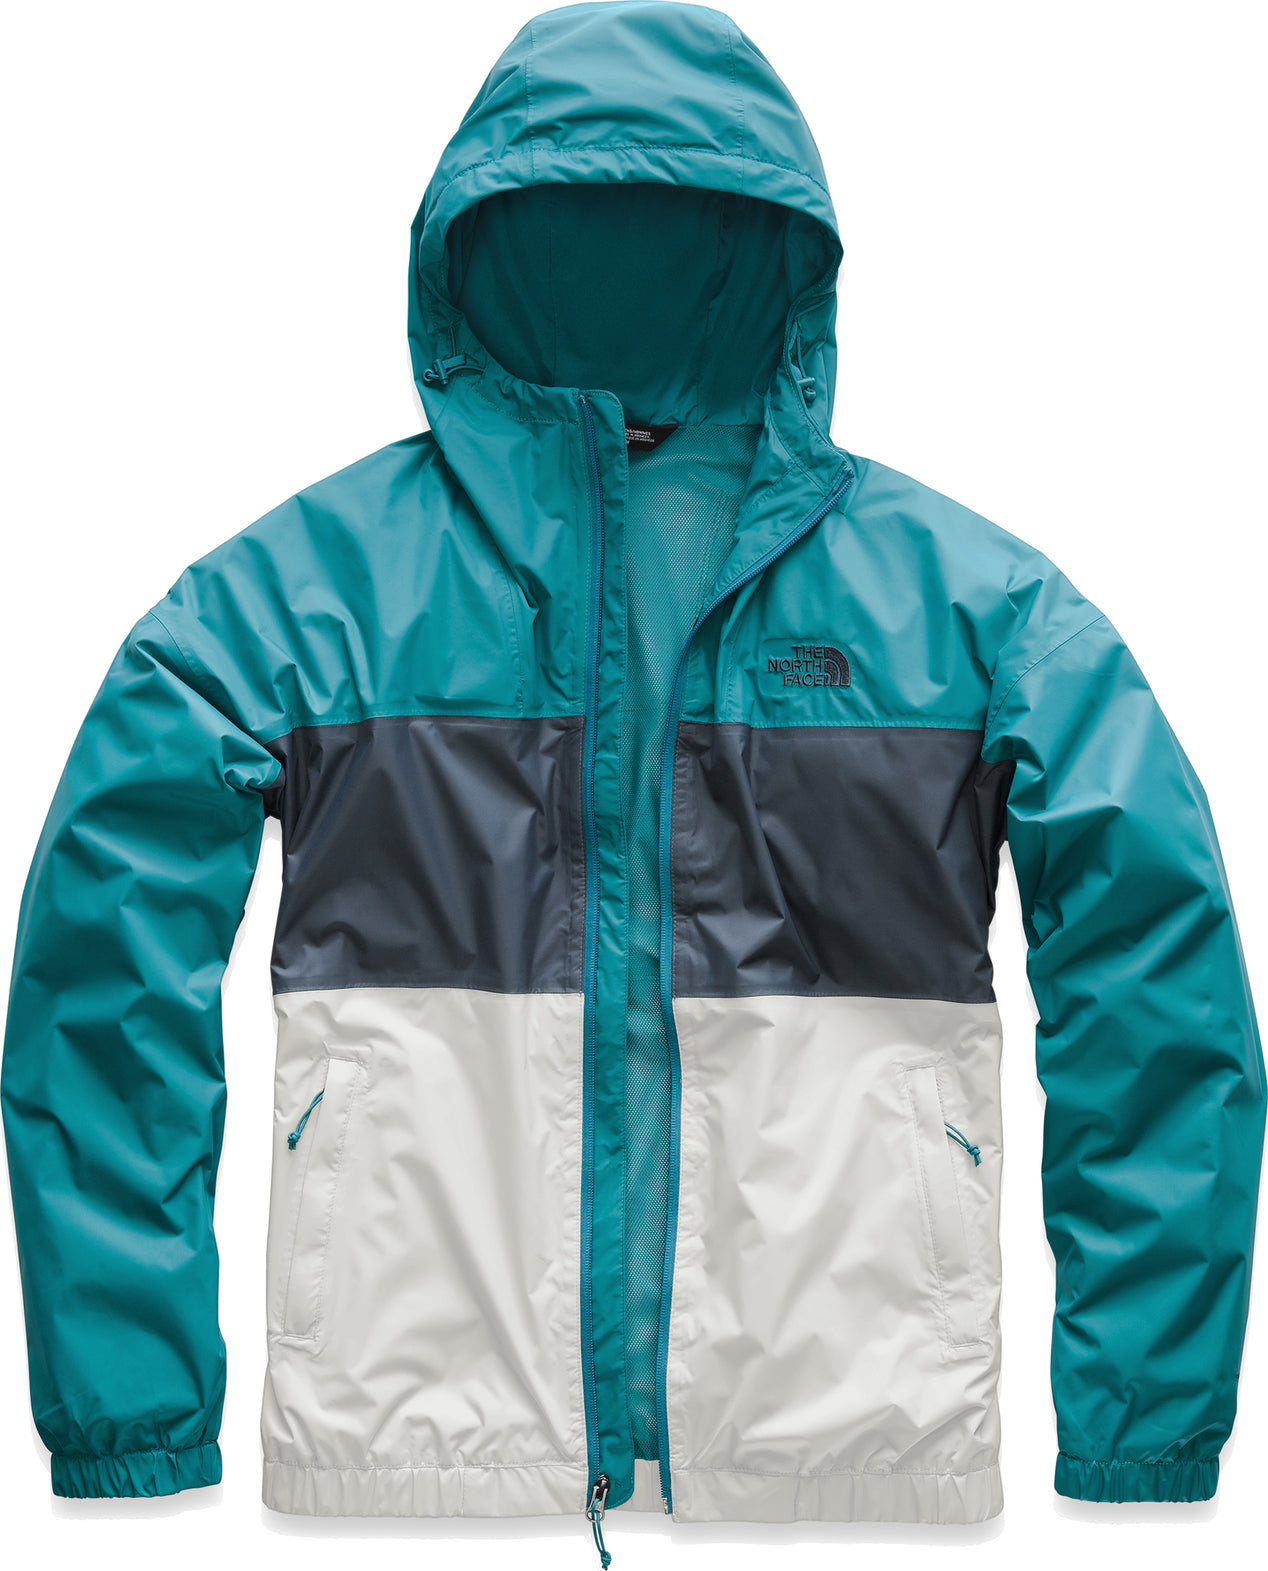 741f79ccf The North Face Duplicity Jacket - Men's